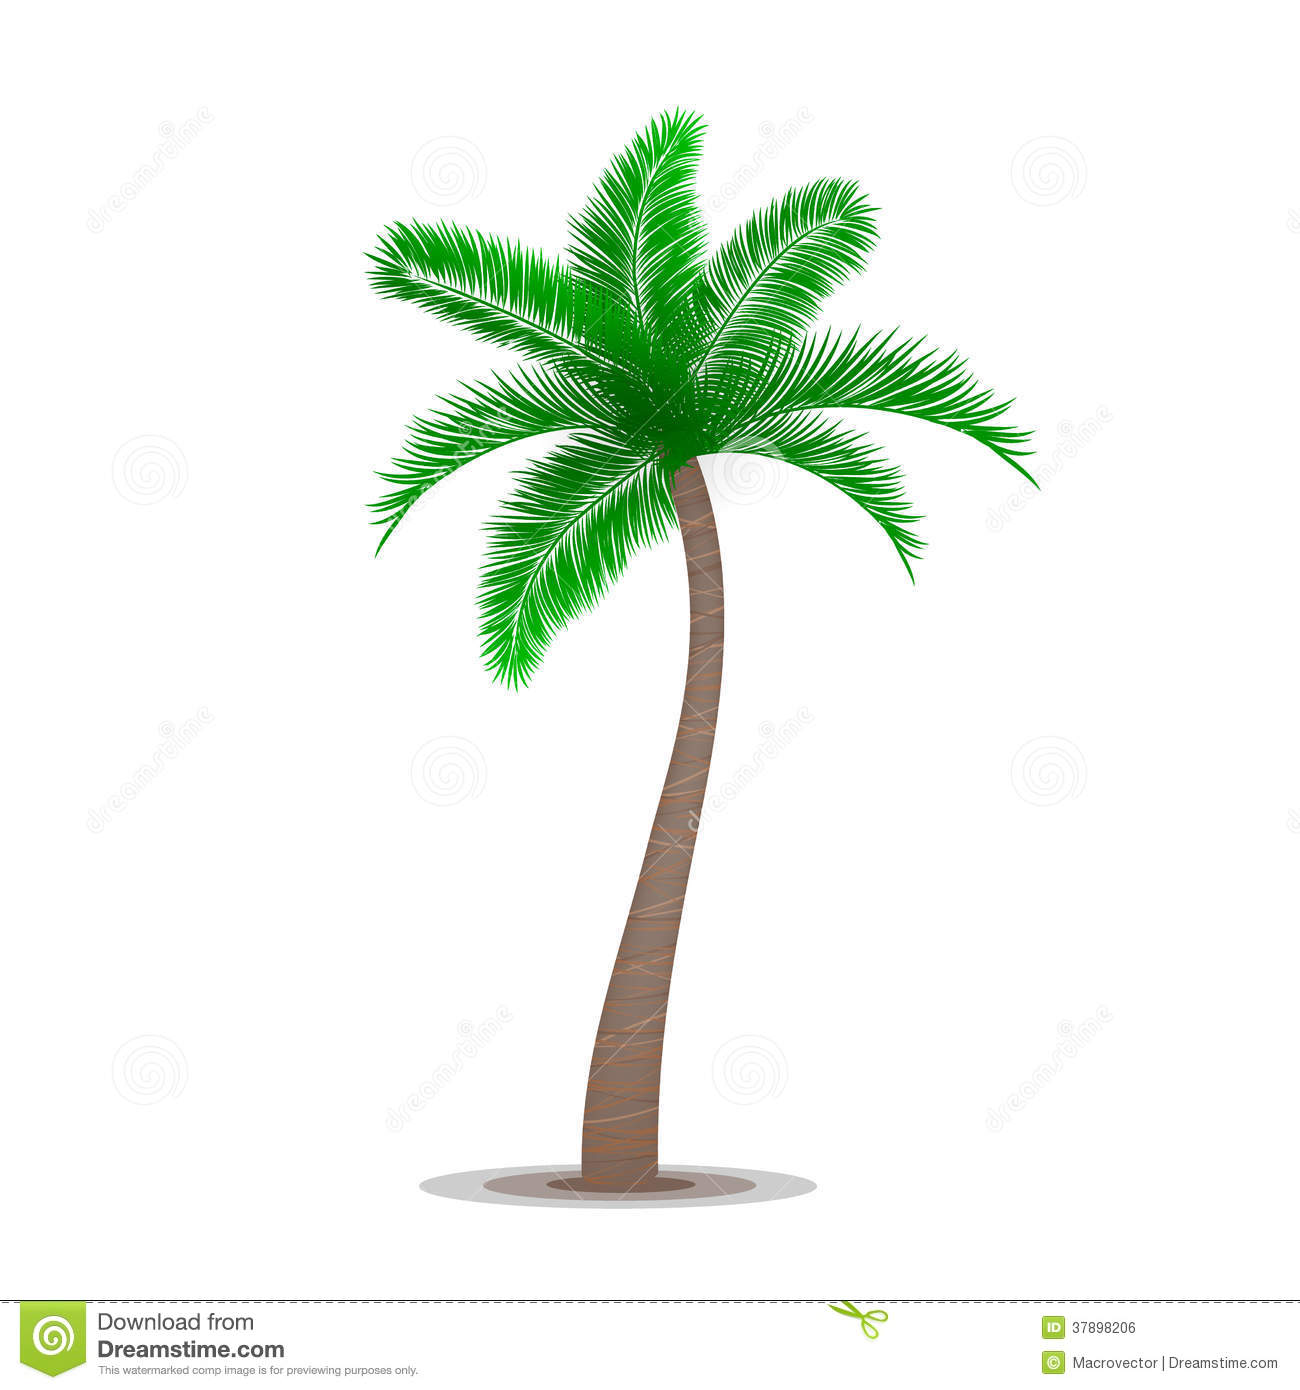 Tropical Palm Tree Symbol Stock Vector Illustration Of Isolated